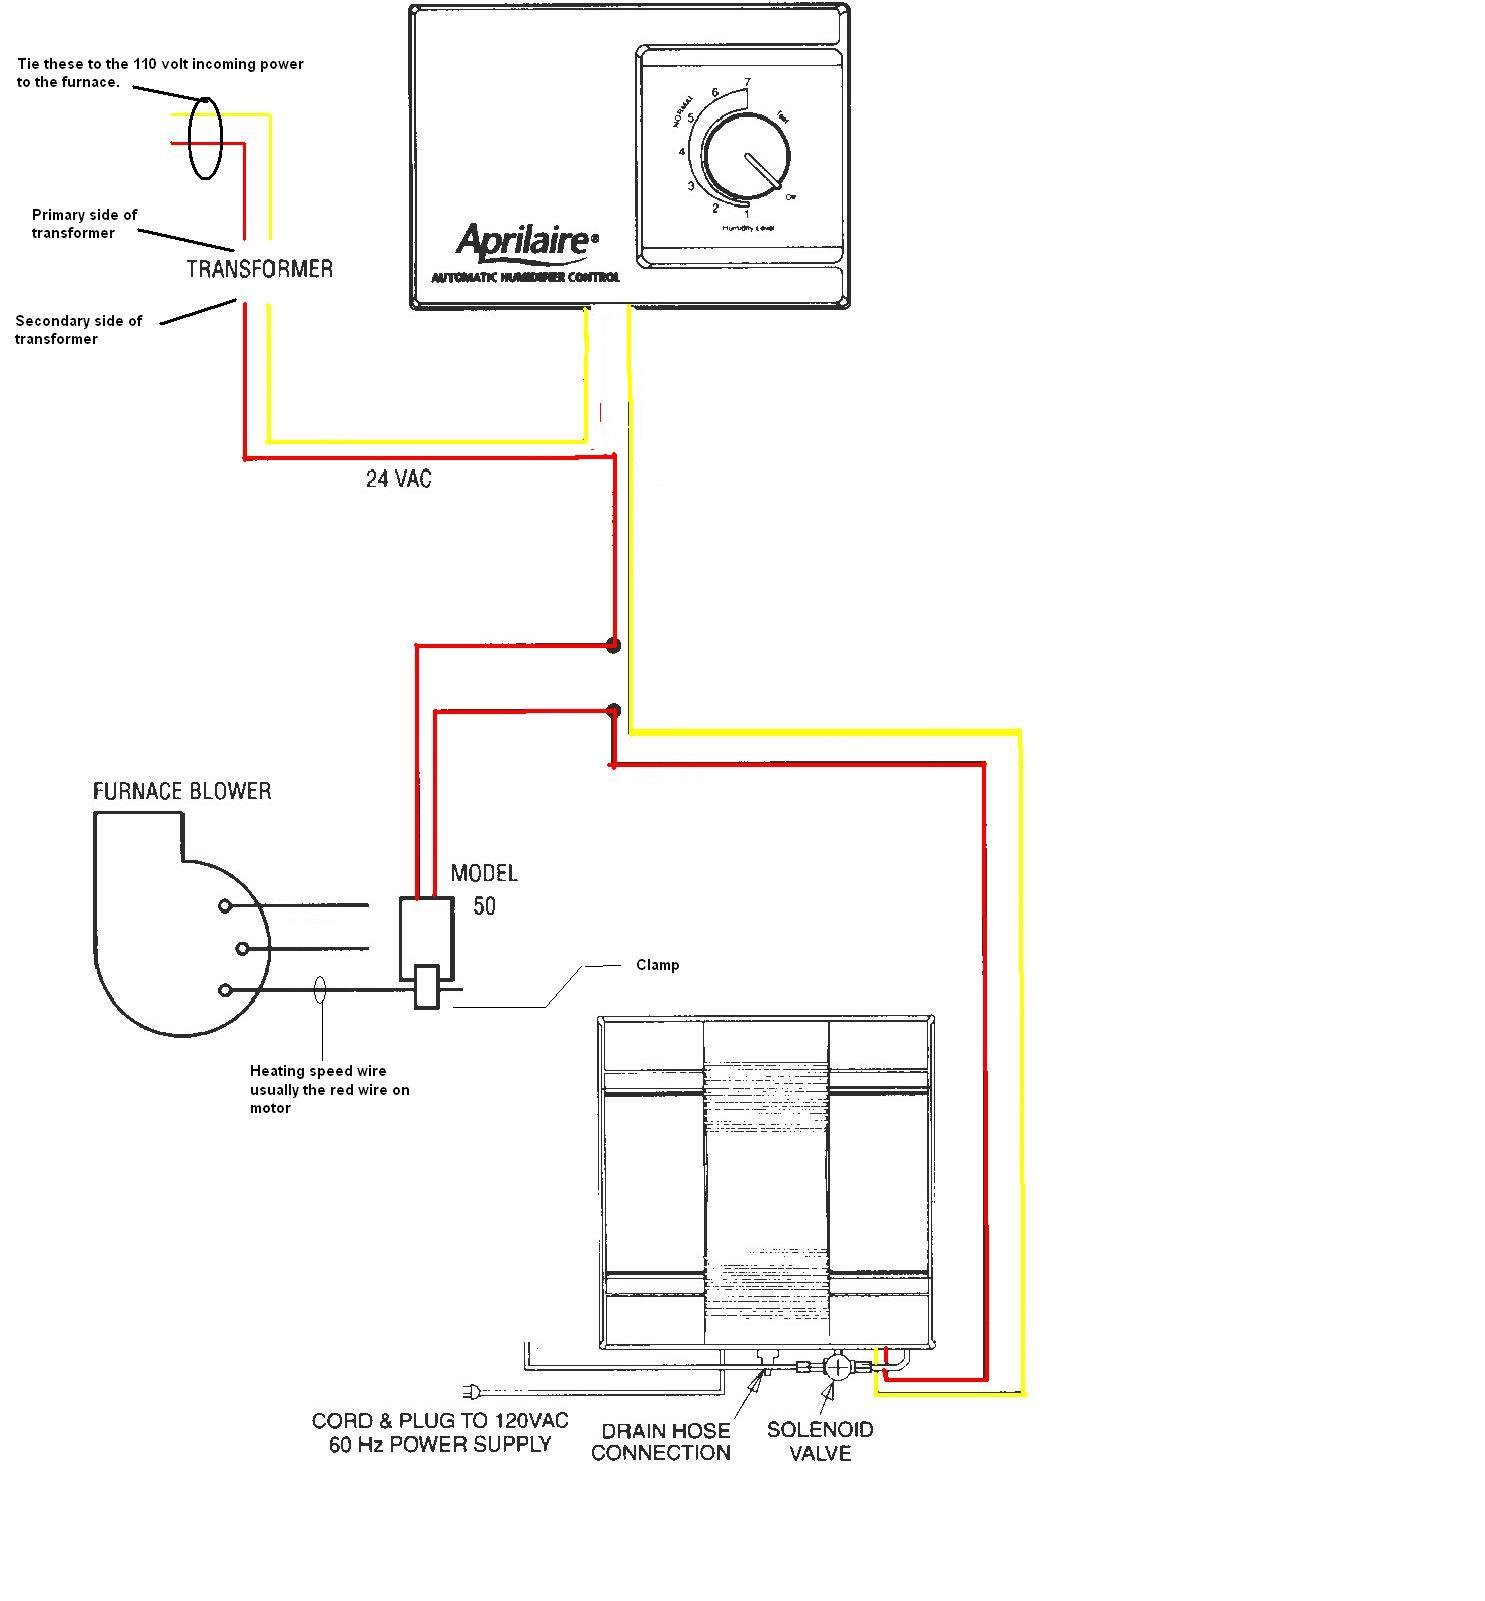 2010 01 04_183759_hum_50_700_ i have an aprilaire 700 m humidifier that i can not wire aprilaire 700 humidifier wiring diagram at crackthecode.co